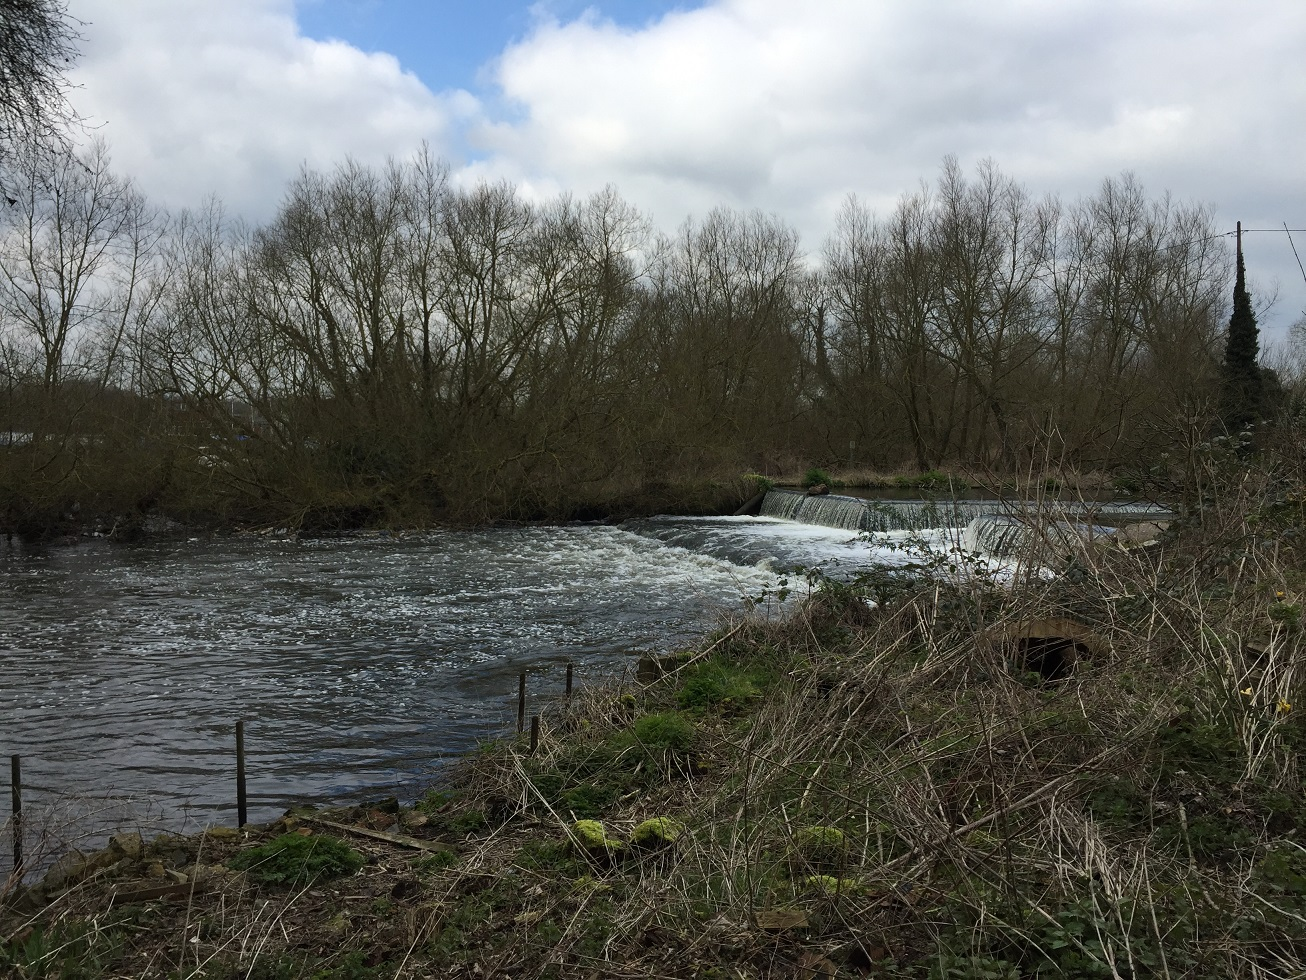 River Colne, near Harefield, on the London Loop Recreational Walk